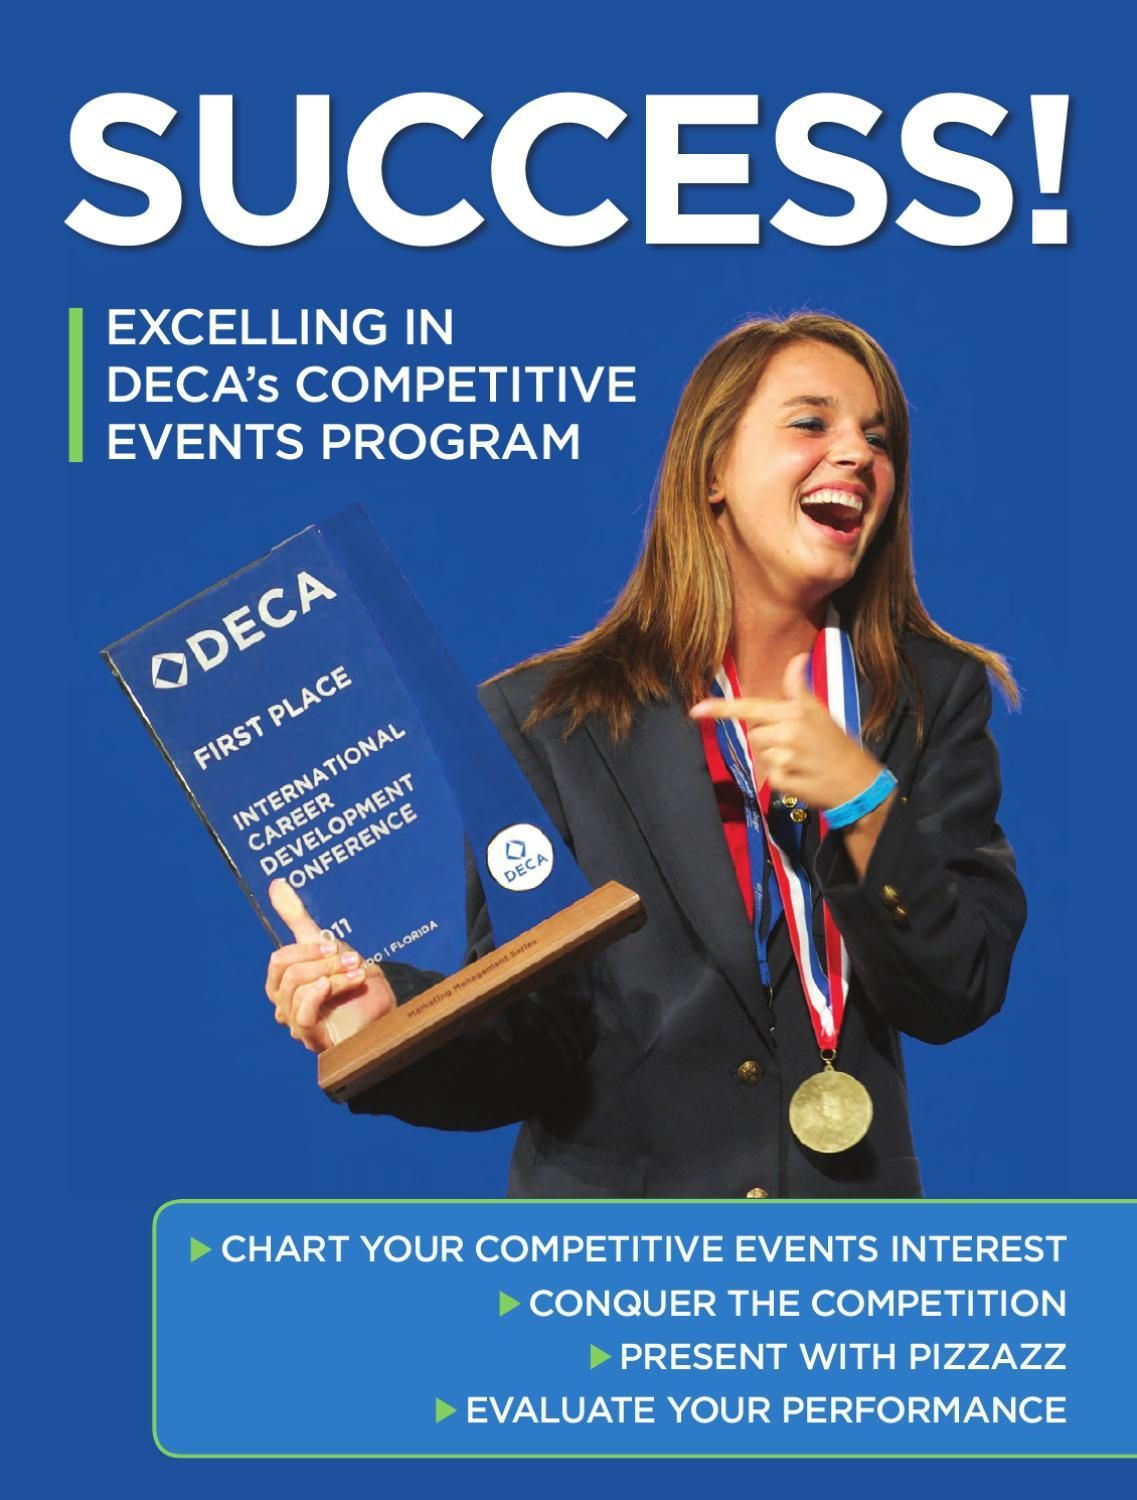 Success! Excelling in DECA's Competitive Events Program